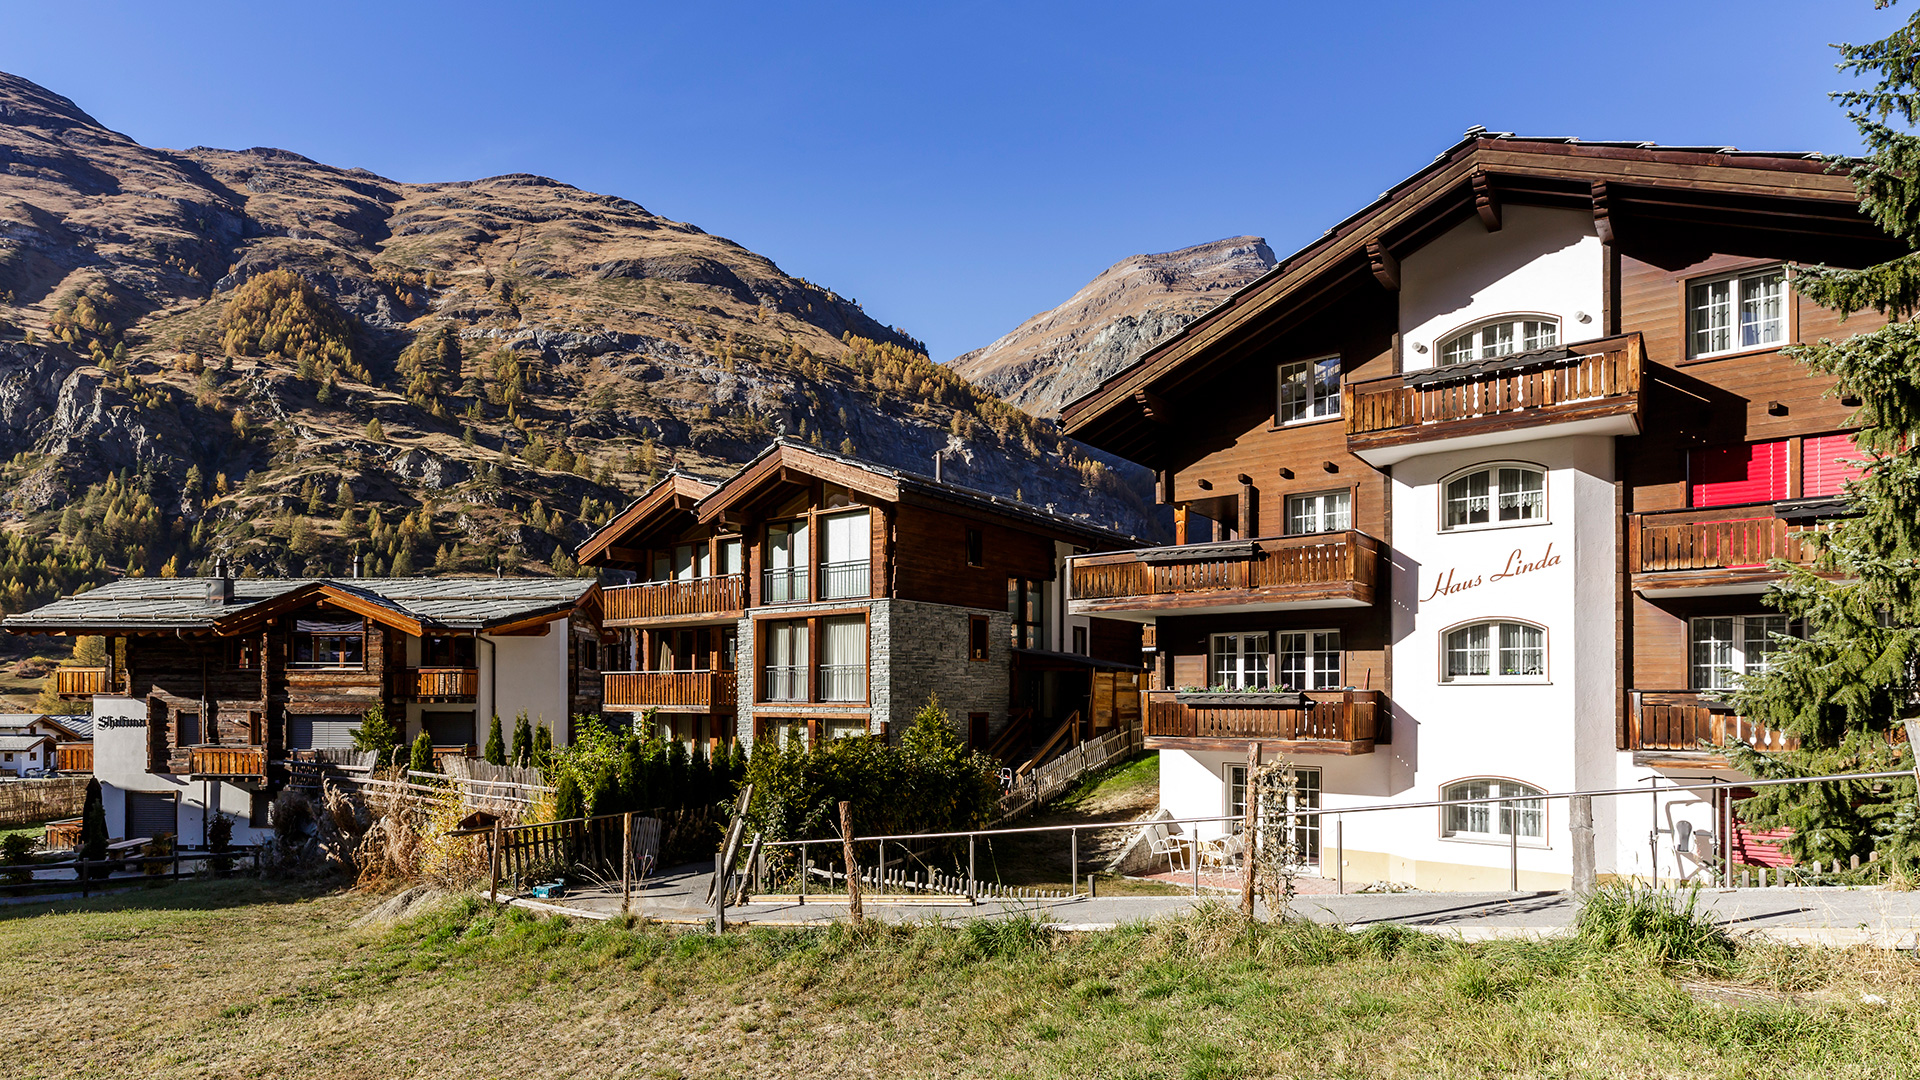 Haus Linda Chalet, Switzerland